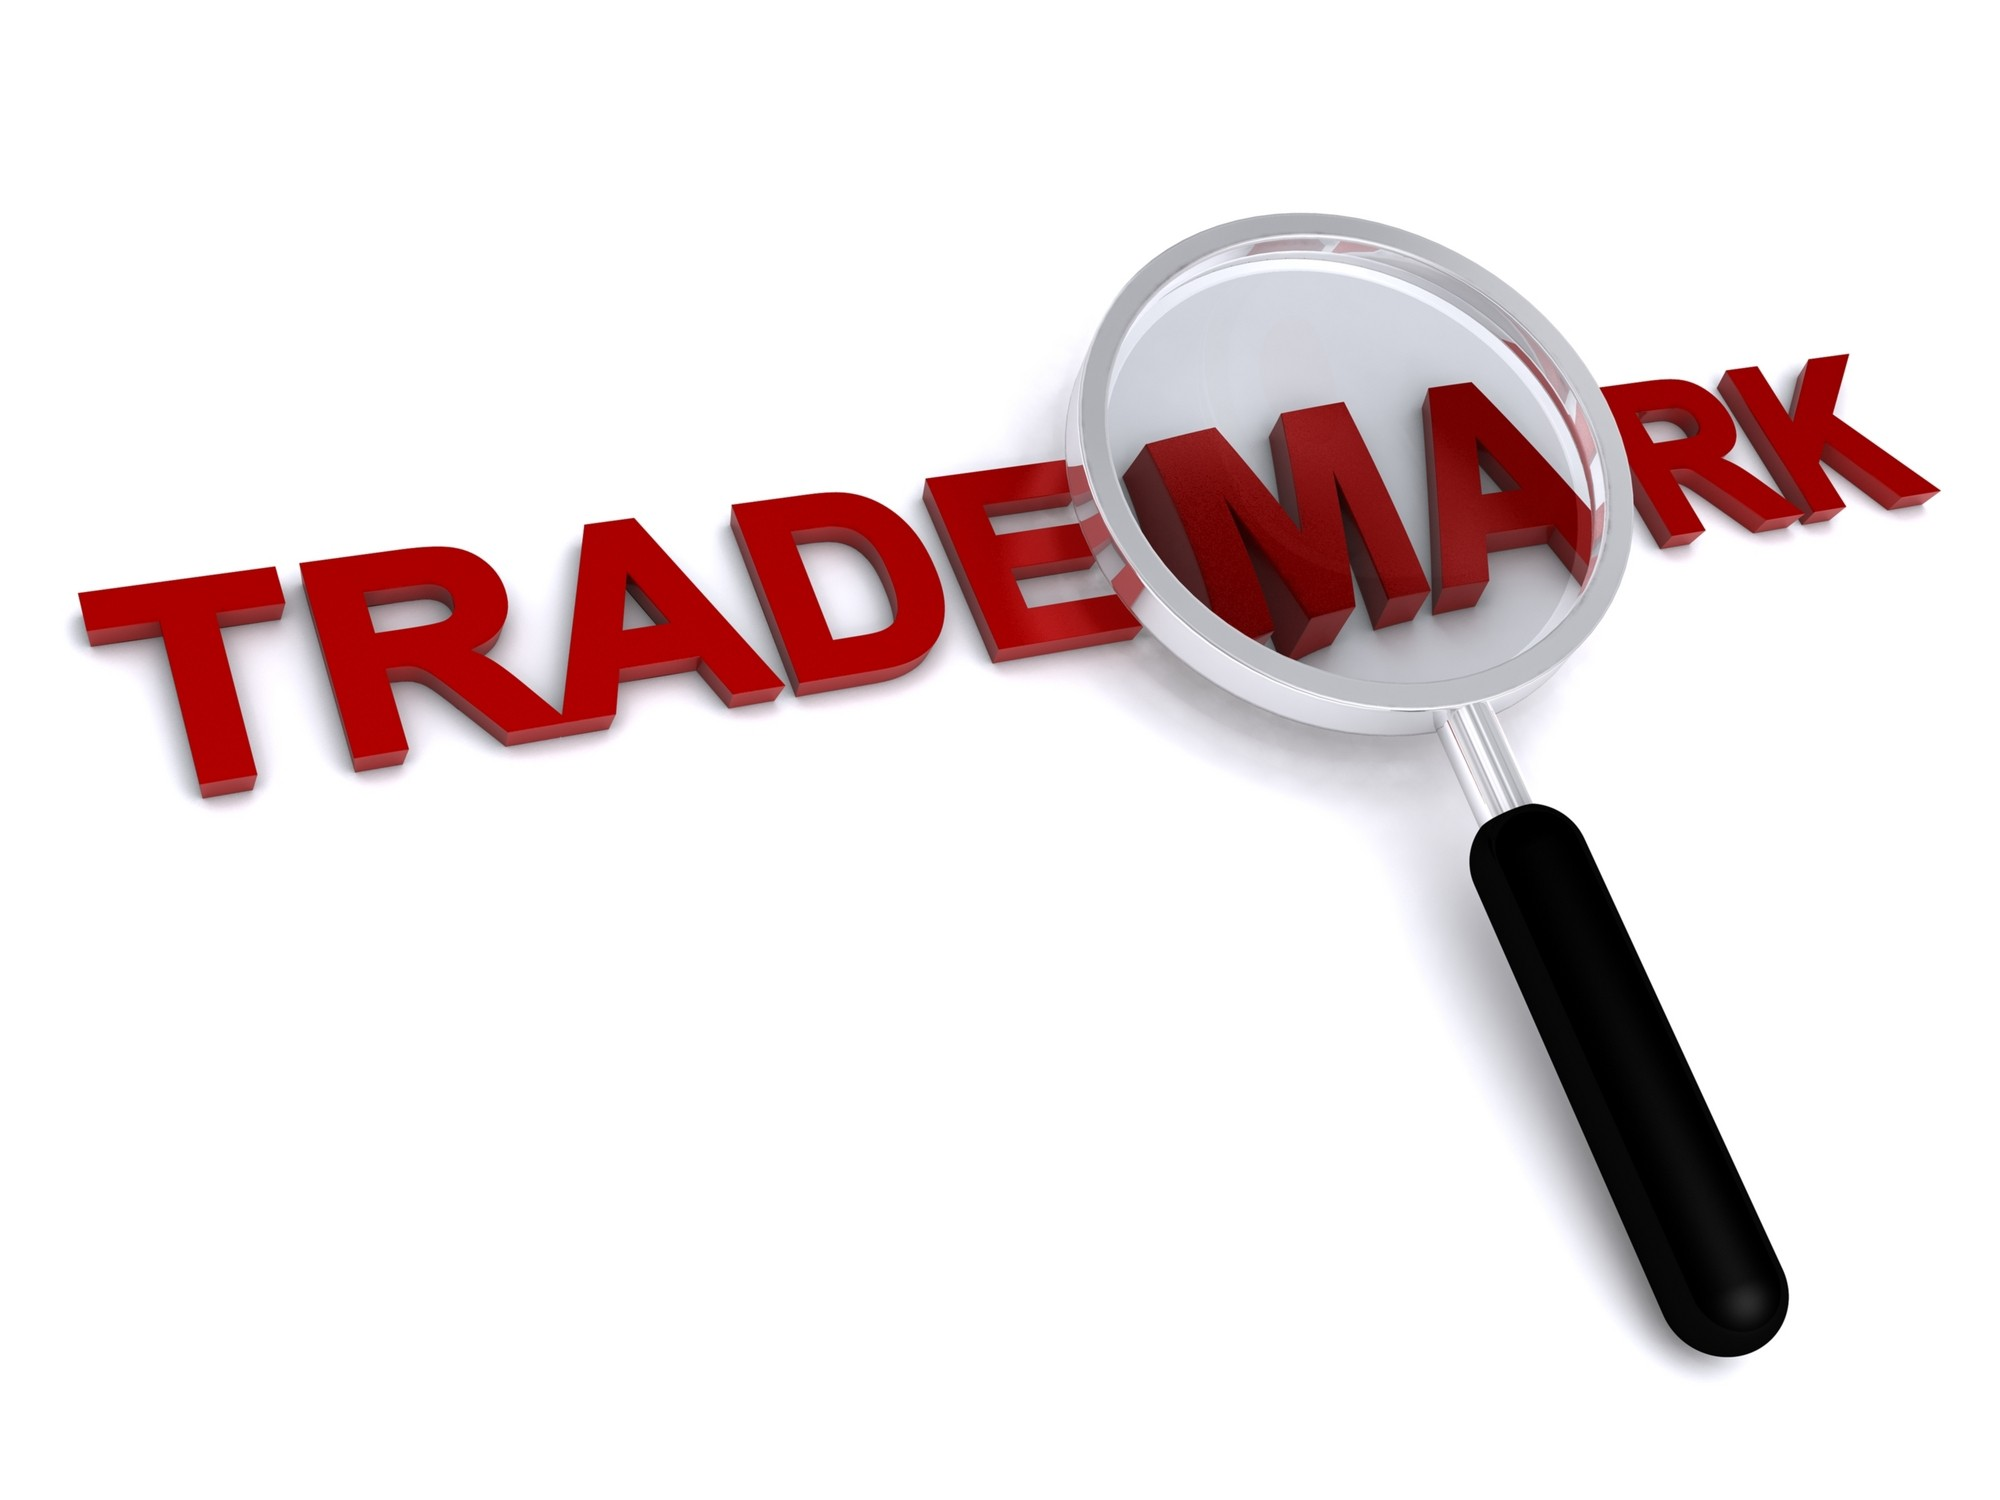 How to get trademark registration for your business